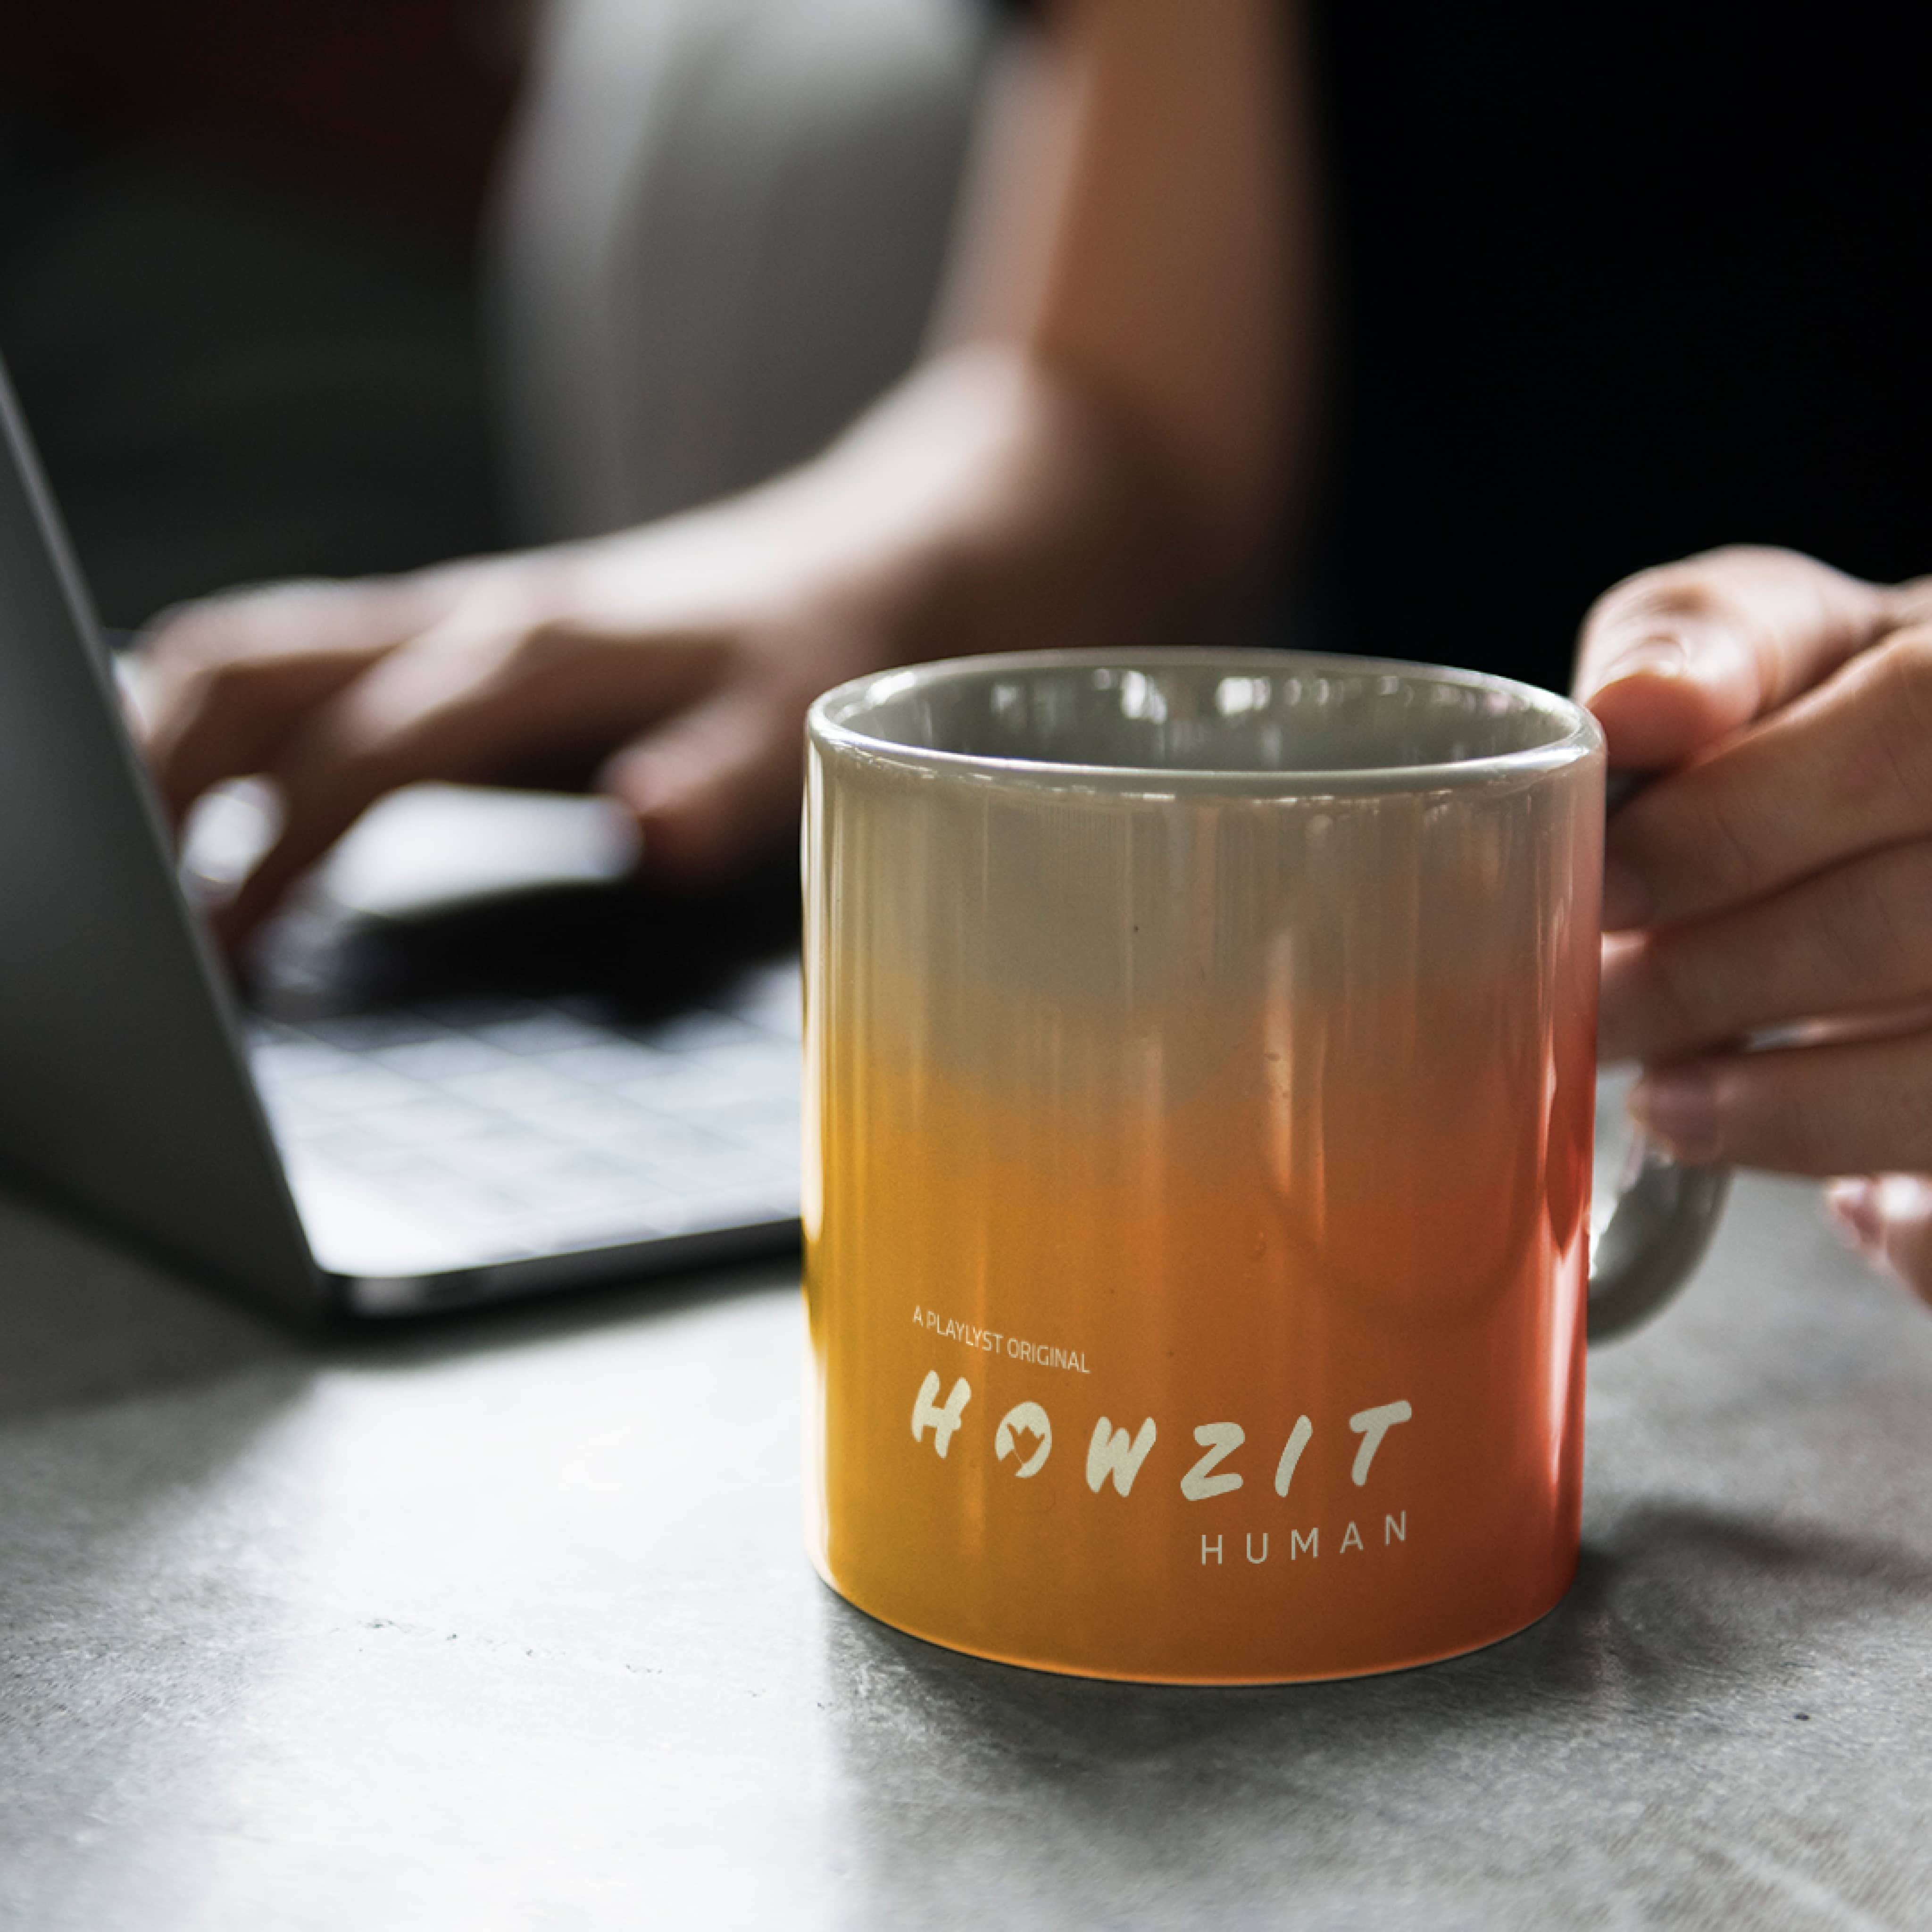 Howzit Human Brand Identity Application by Khula Design Studio at Vancouver, Canada